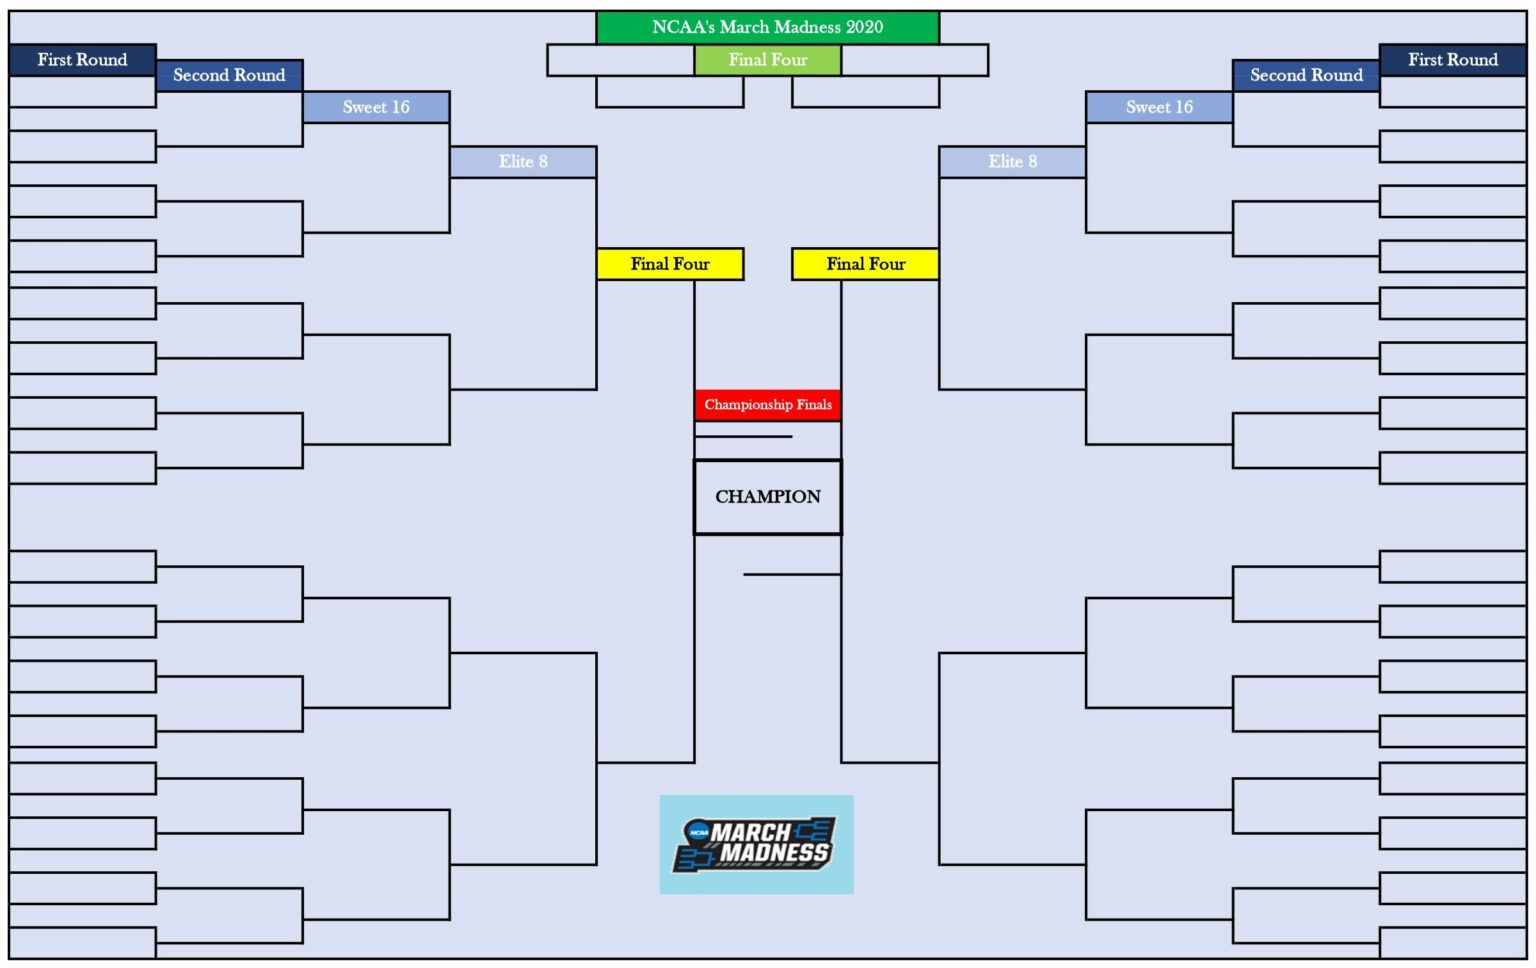 Blank March Madness Bracket For 2020 Ncaa Men S Basketball With Regard To Blank March Madness Bracket Template March Madness Bracket Ncaa Bracket March Madness